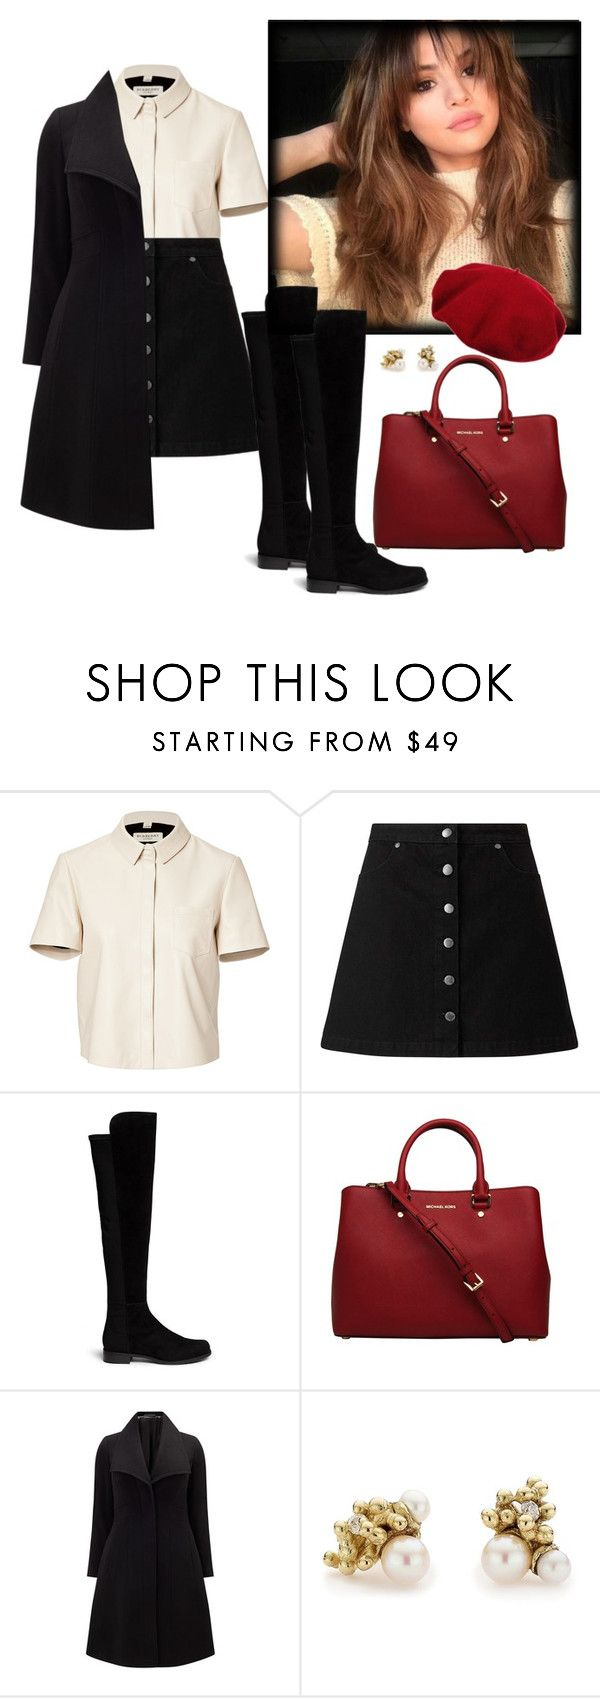 """""""Weekend in Paris (with song in description)"""" by betulkizilirmaak ❤ liked on Polyvore featuring Burberry, Miss Selfridge, Stuart Weitzman, MICHAEL Michael Kors, Laulhere, Studio 8 and Ruth Tomlinson"""